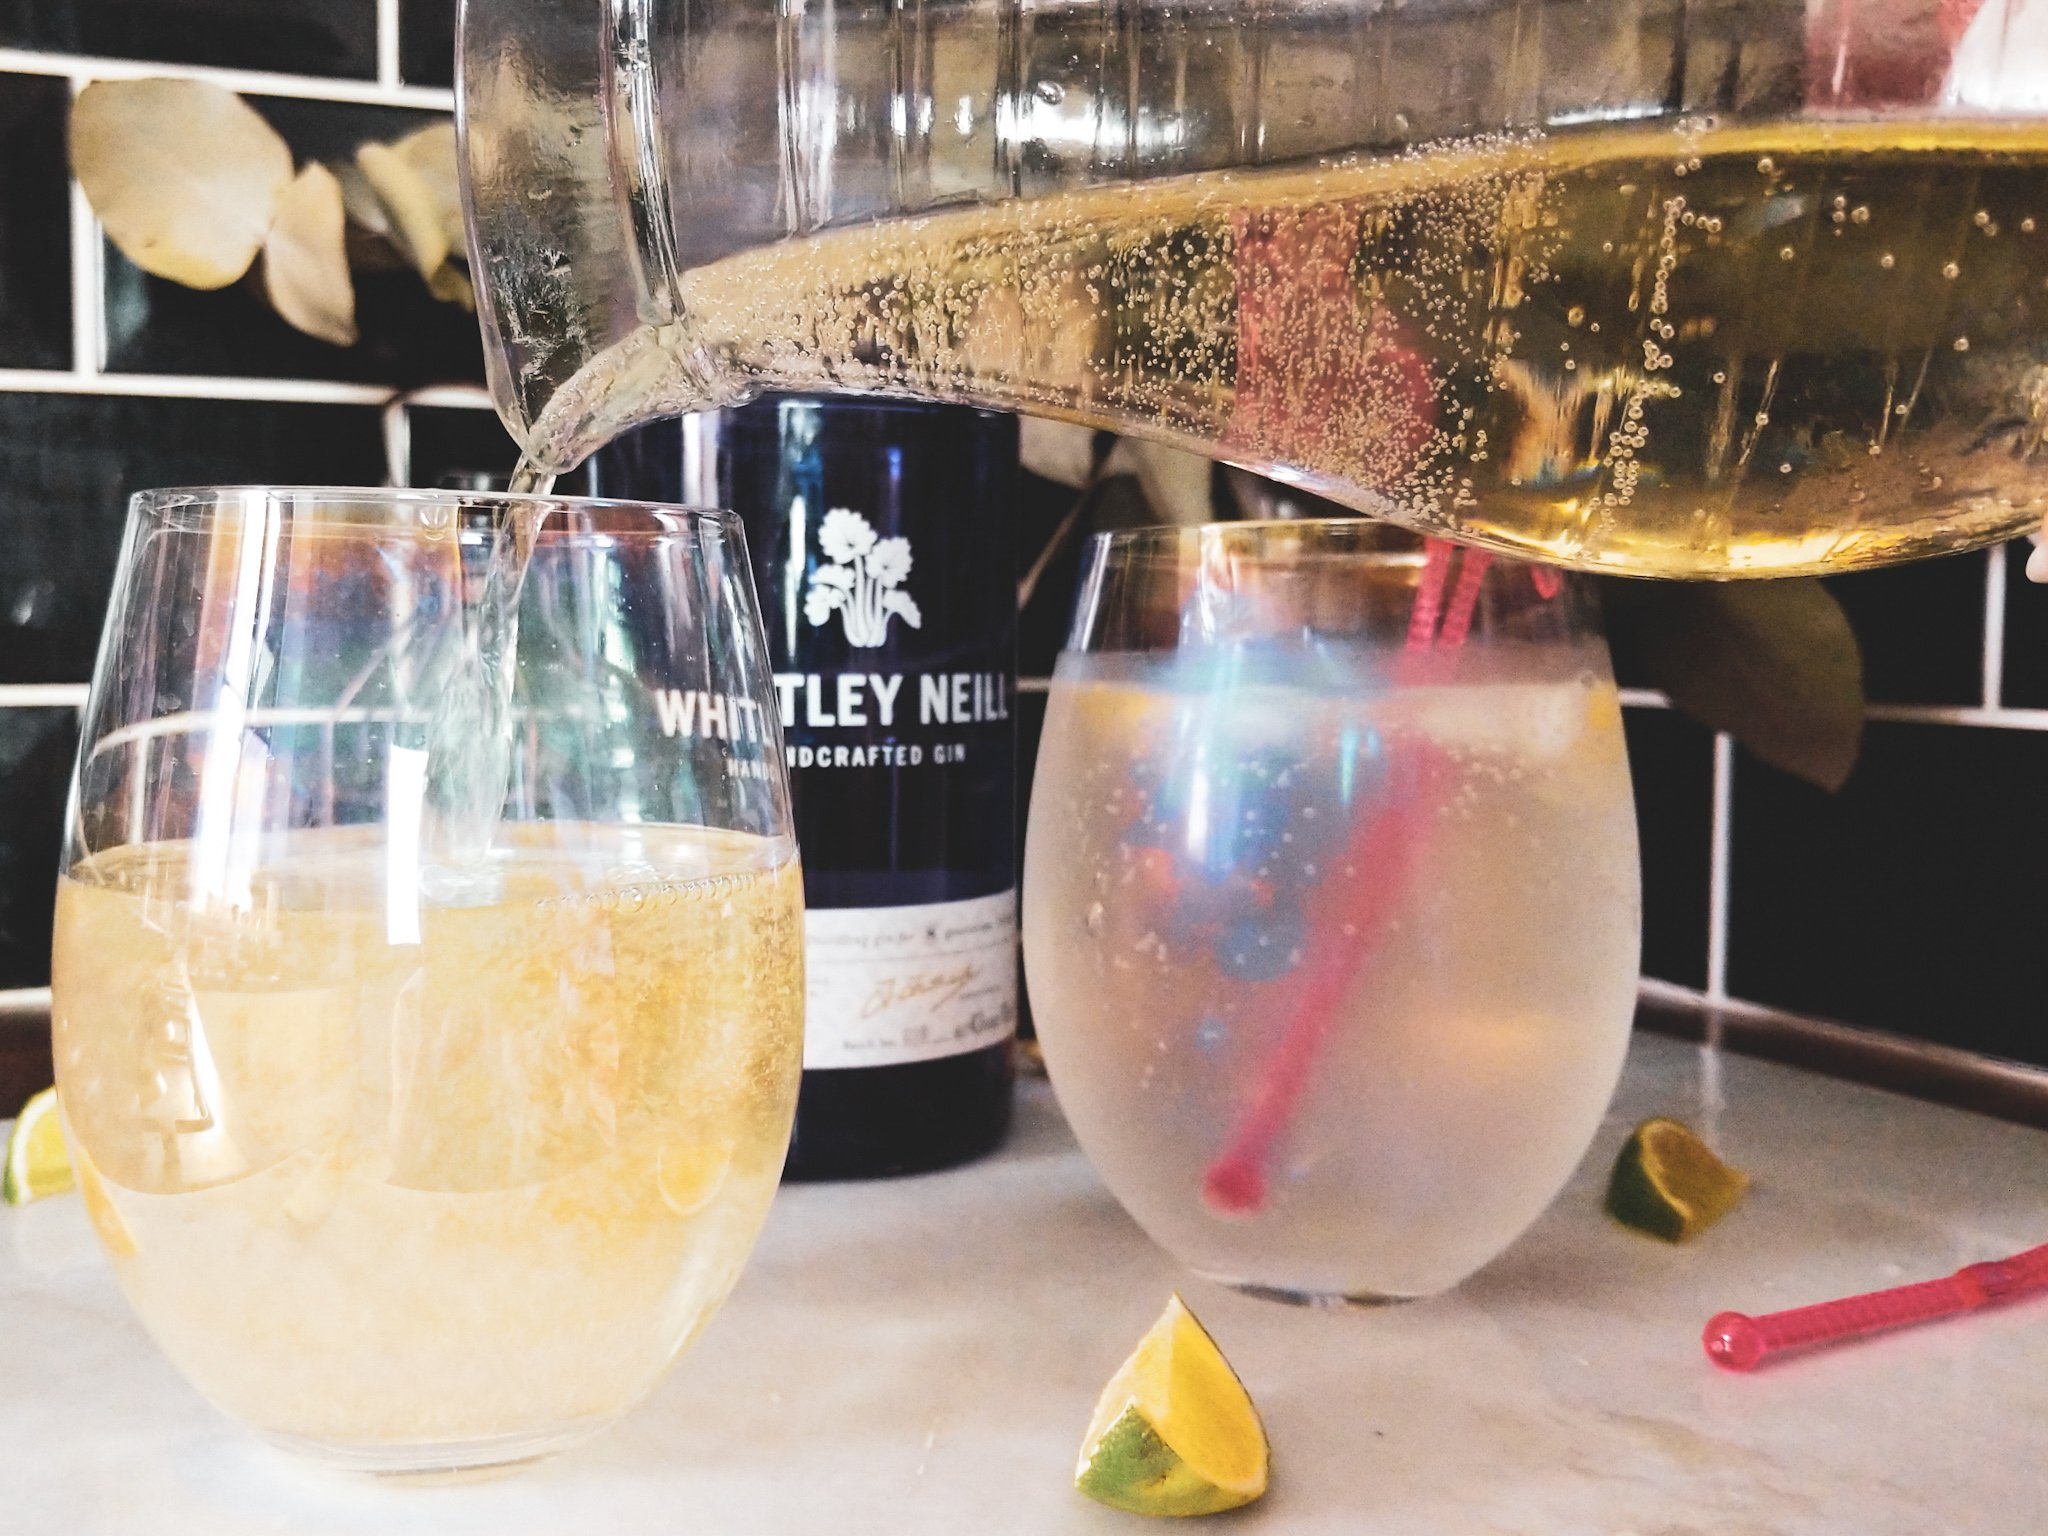 HOW TO MAKE GIN FOR TWO WITH WHITLEY NEILL GIN